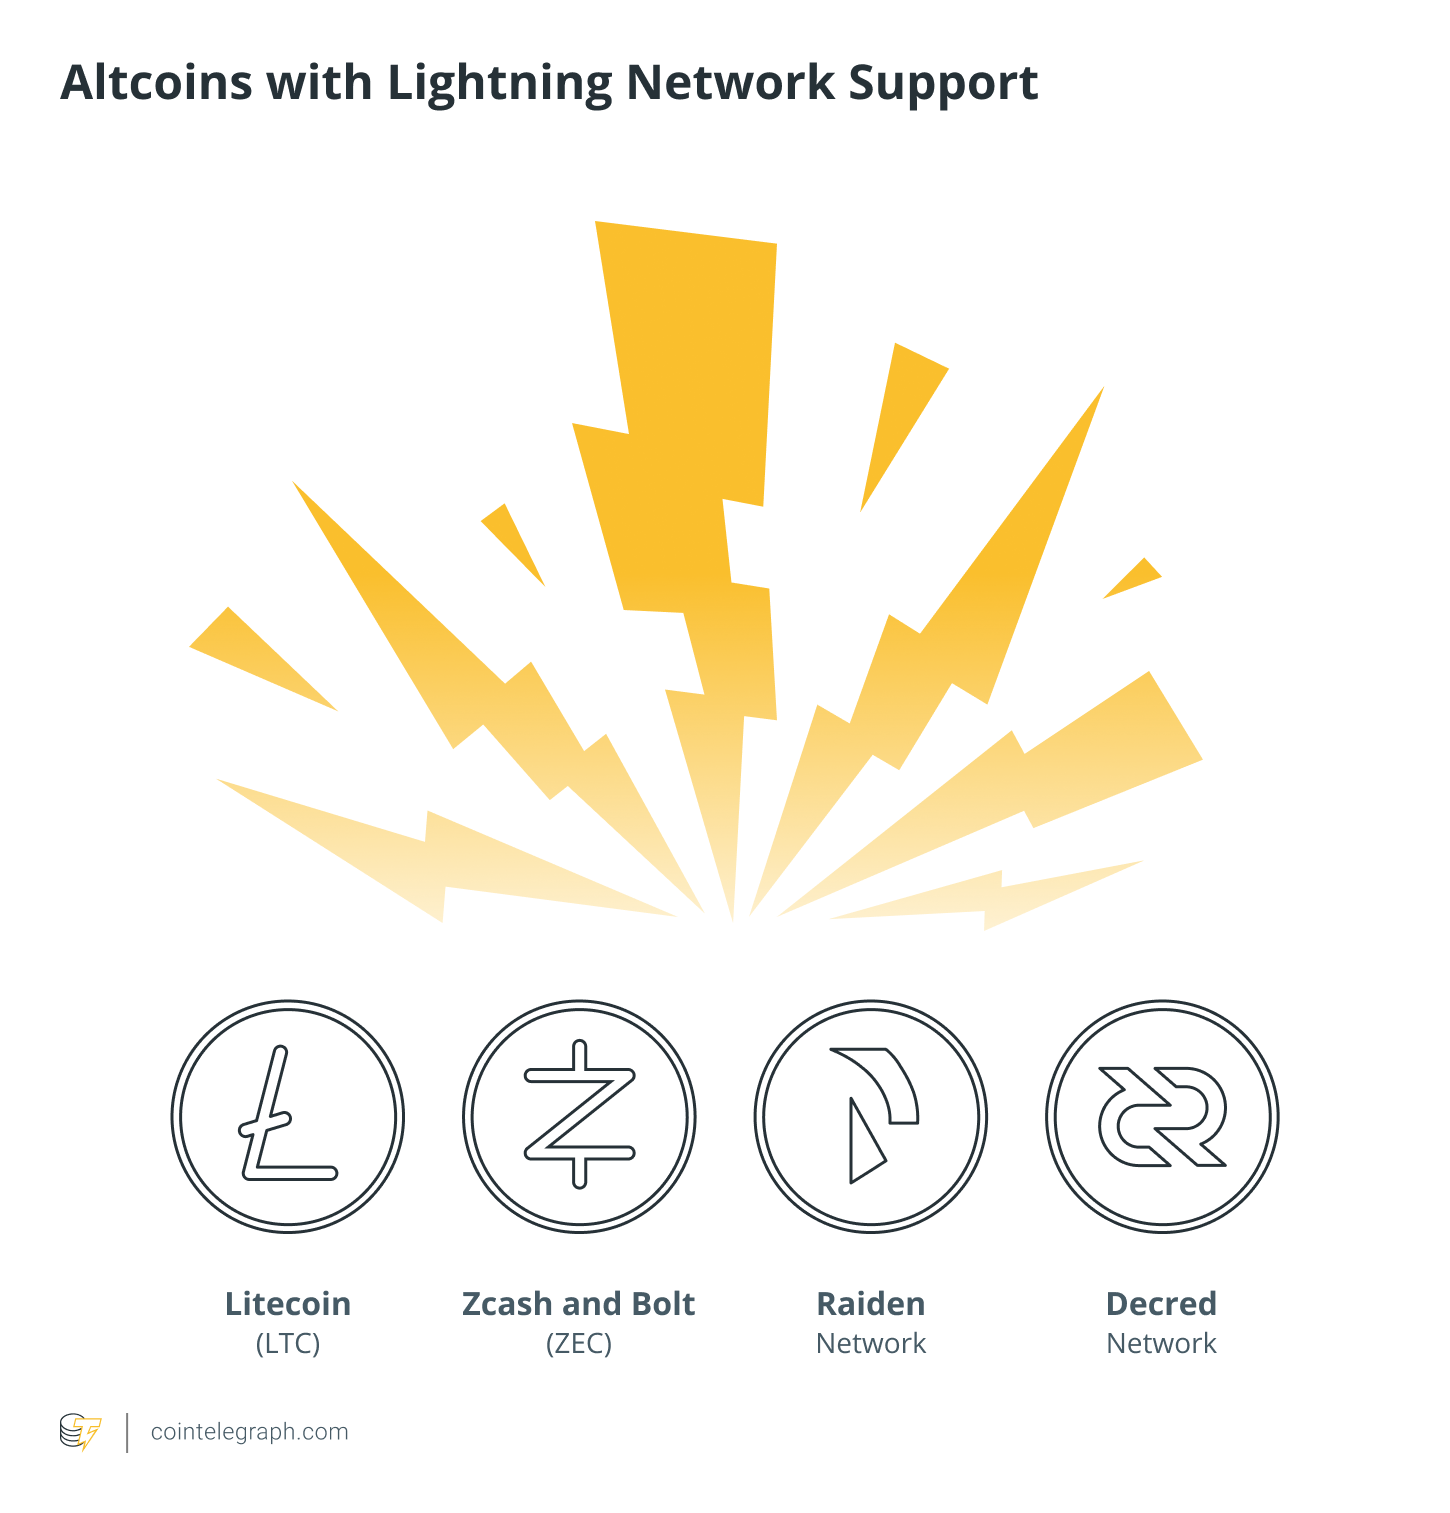 Altcoins with Lightning Network Support